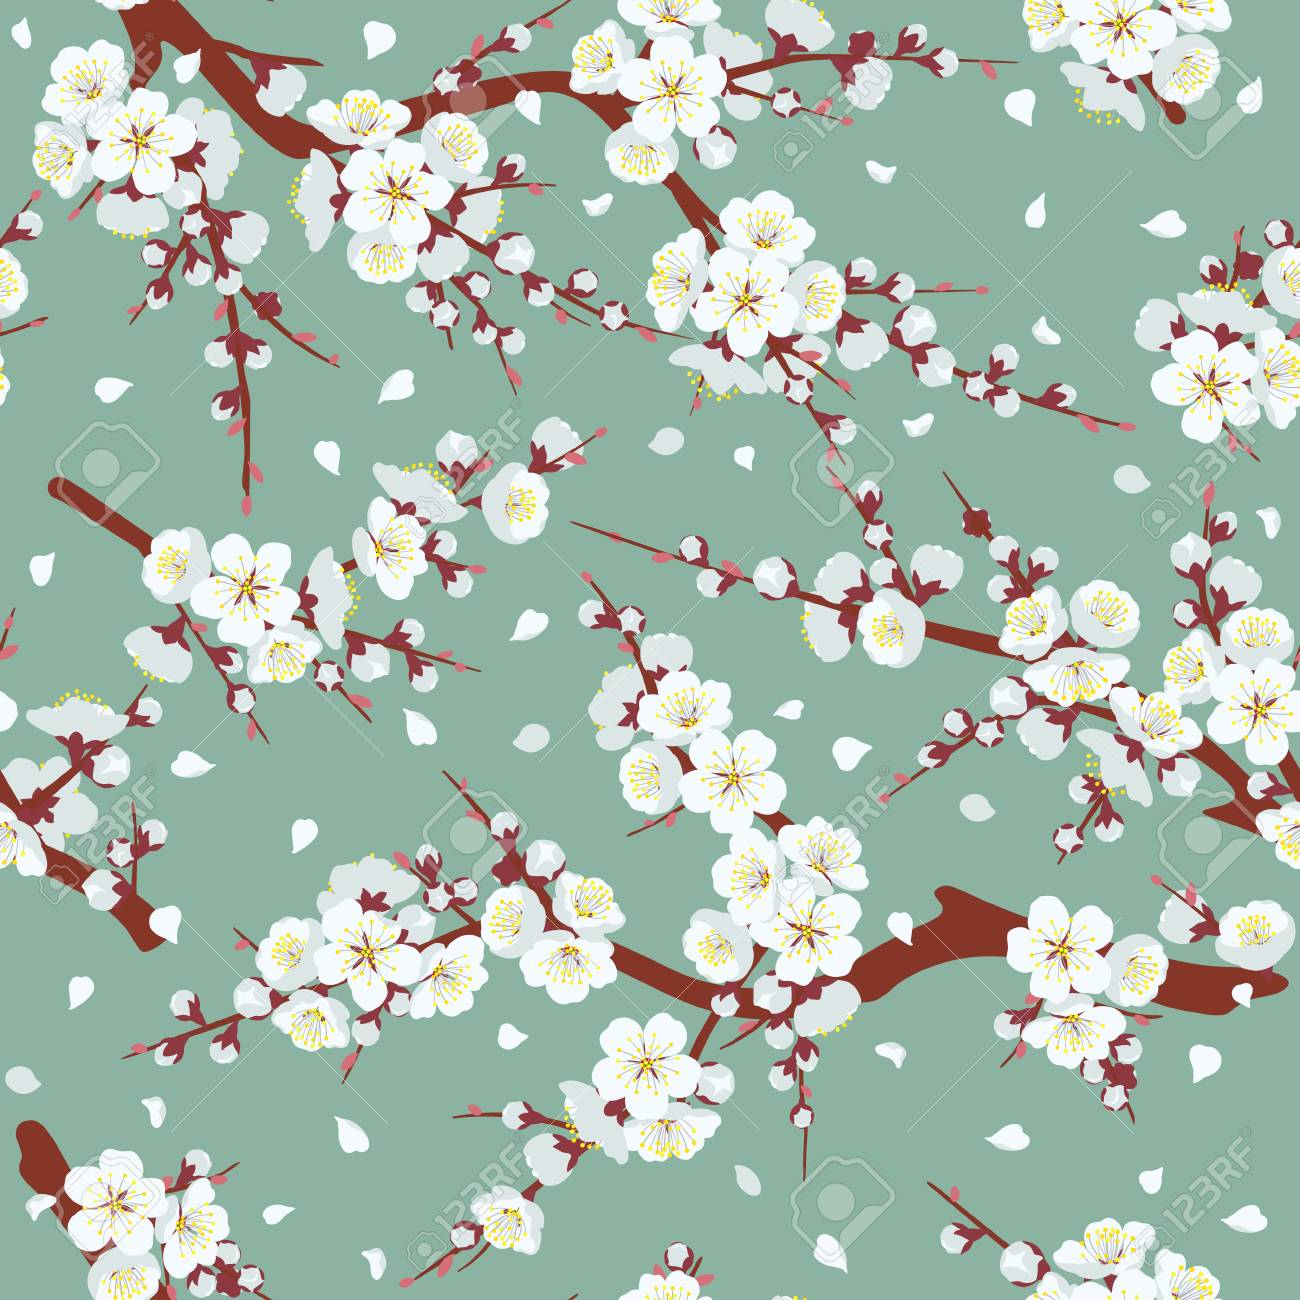 Seamless pattern with flowering tree branches on green background. Endless texture decoration with white flowers and flying petals. Vector flat illustration. - 127315407